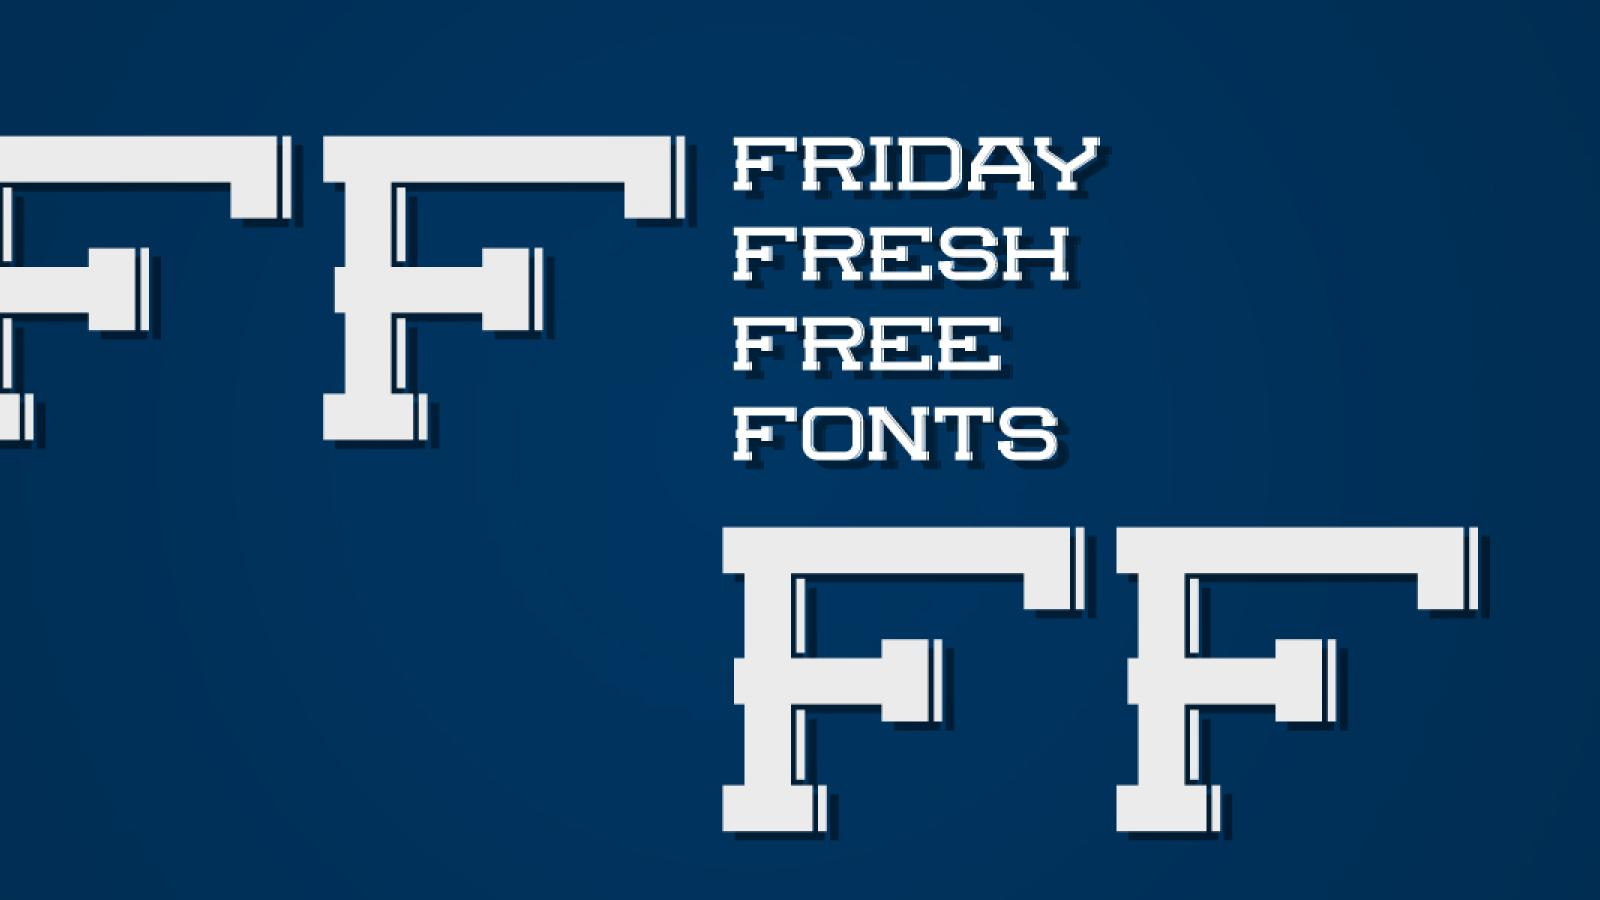 Friday Fresh Free Fonts - Molesk, Scifly, ...